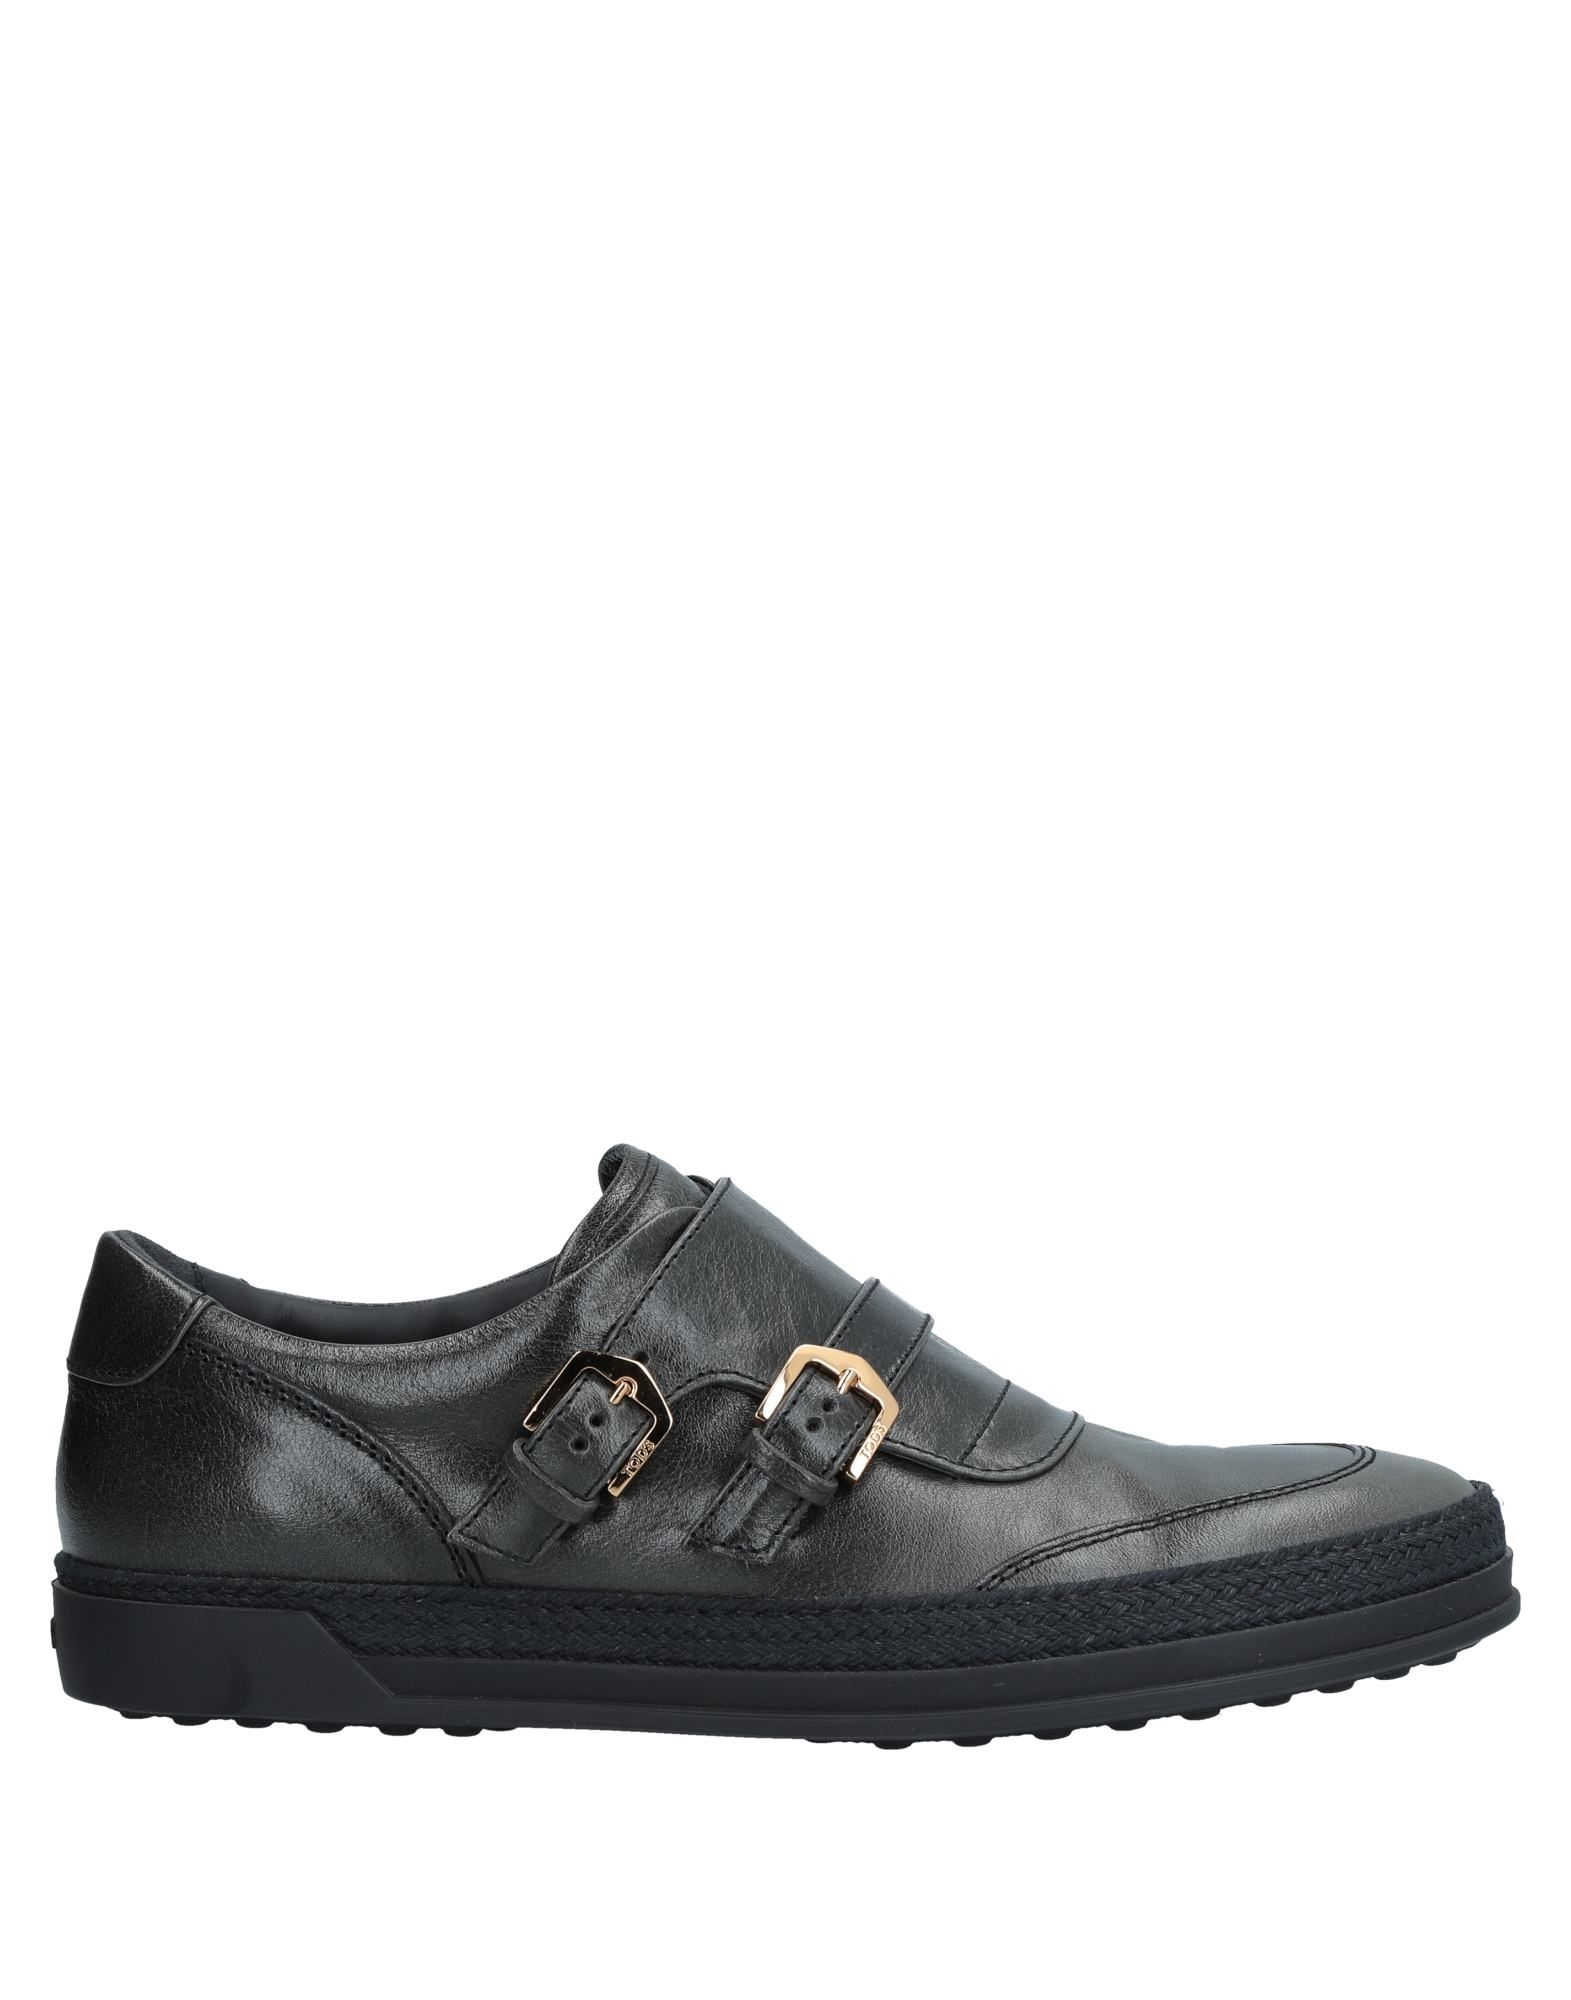 Moda Sneakers Tod's Donna - 11541202LH